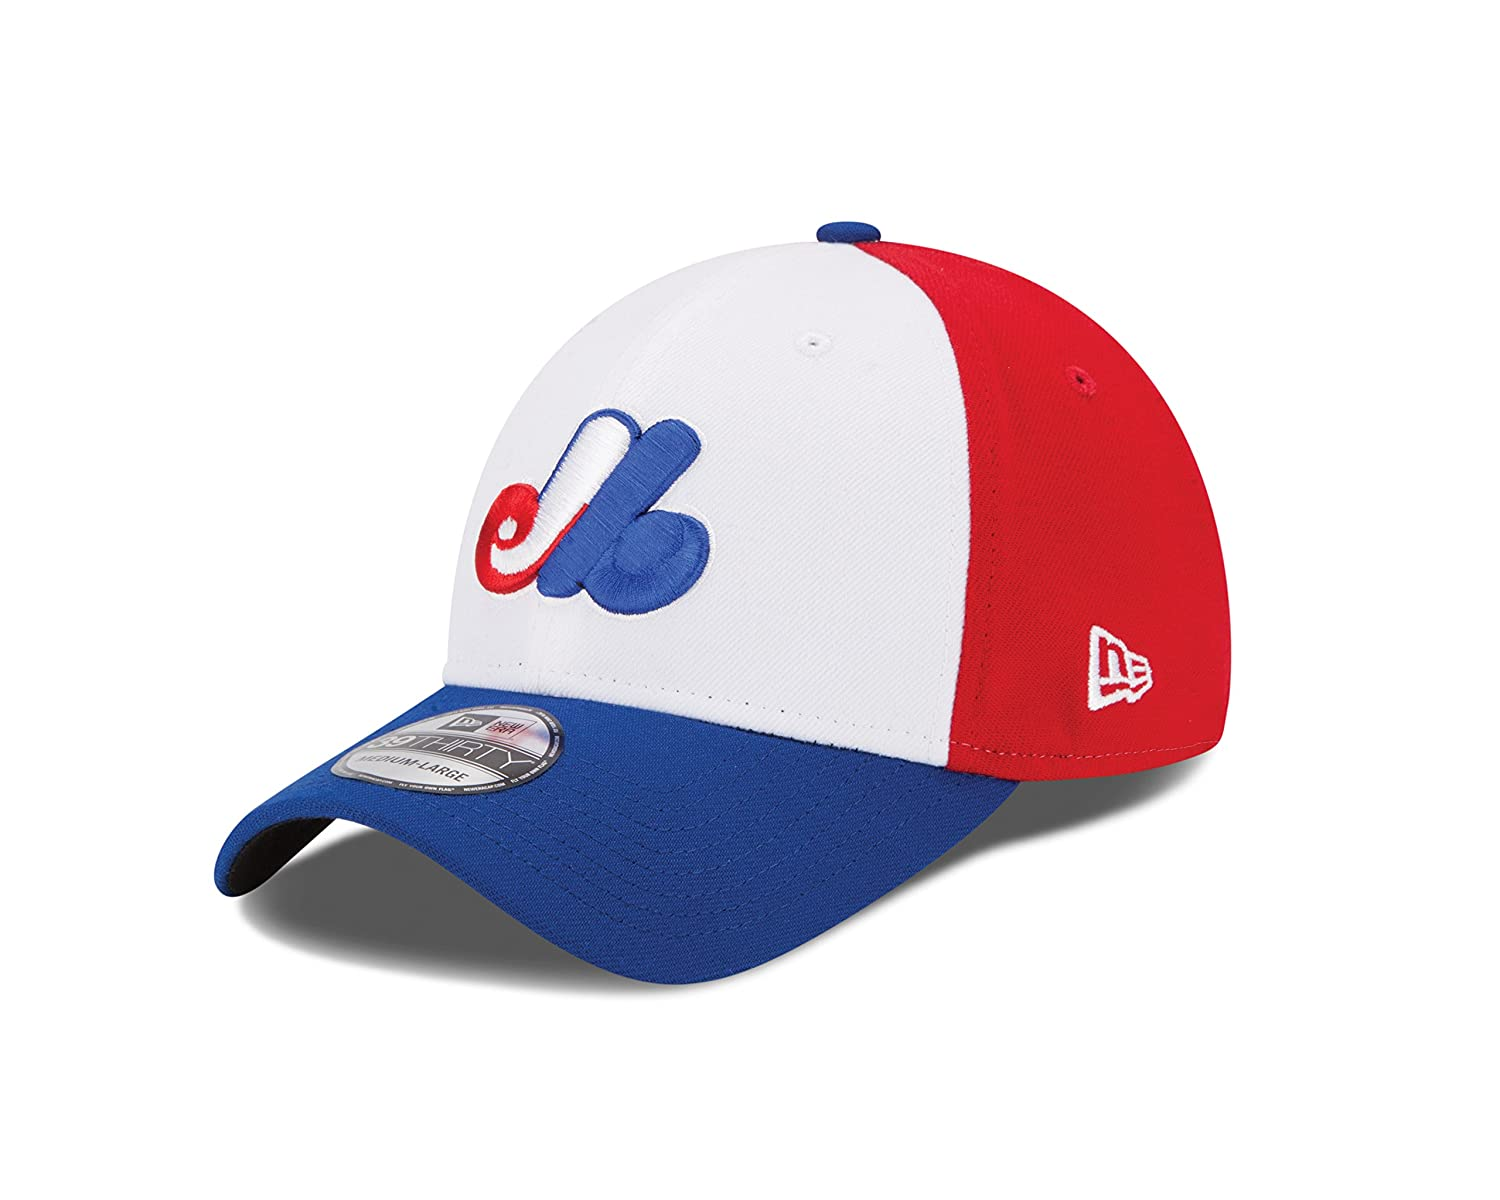 dc3943be6df New Era MLB Cooperstown Team Classic 39THIRTY Stretch Fit Cap ...